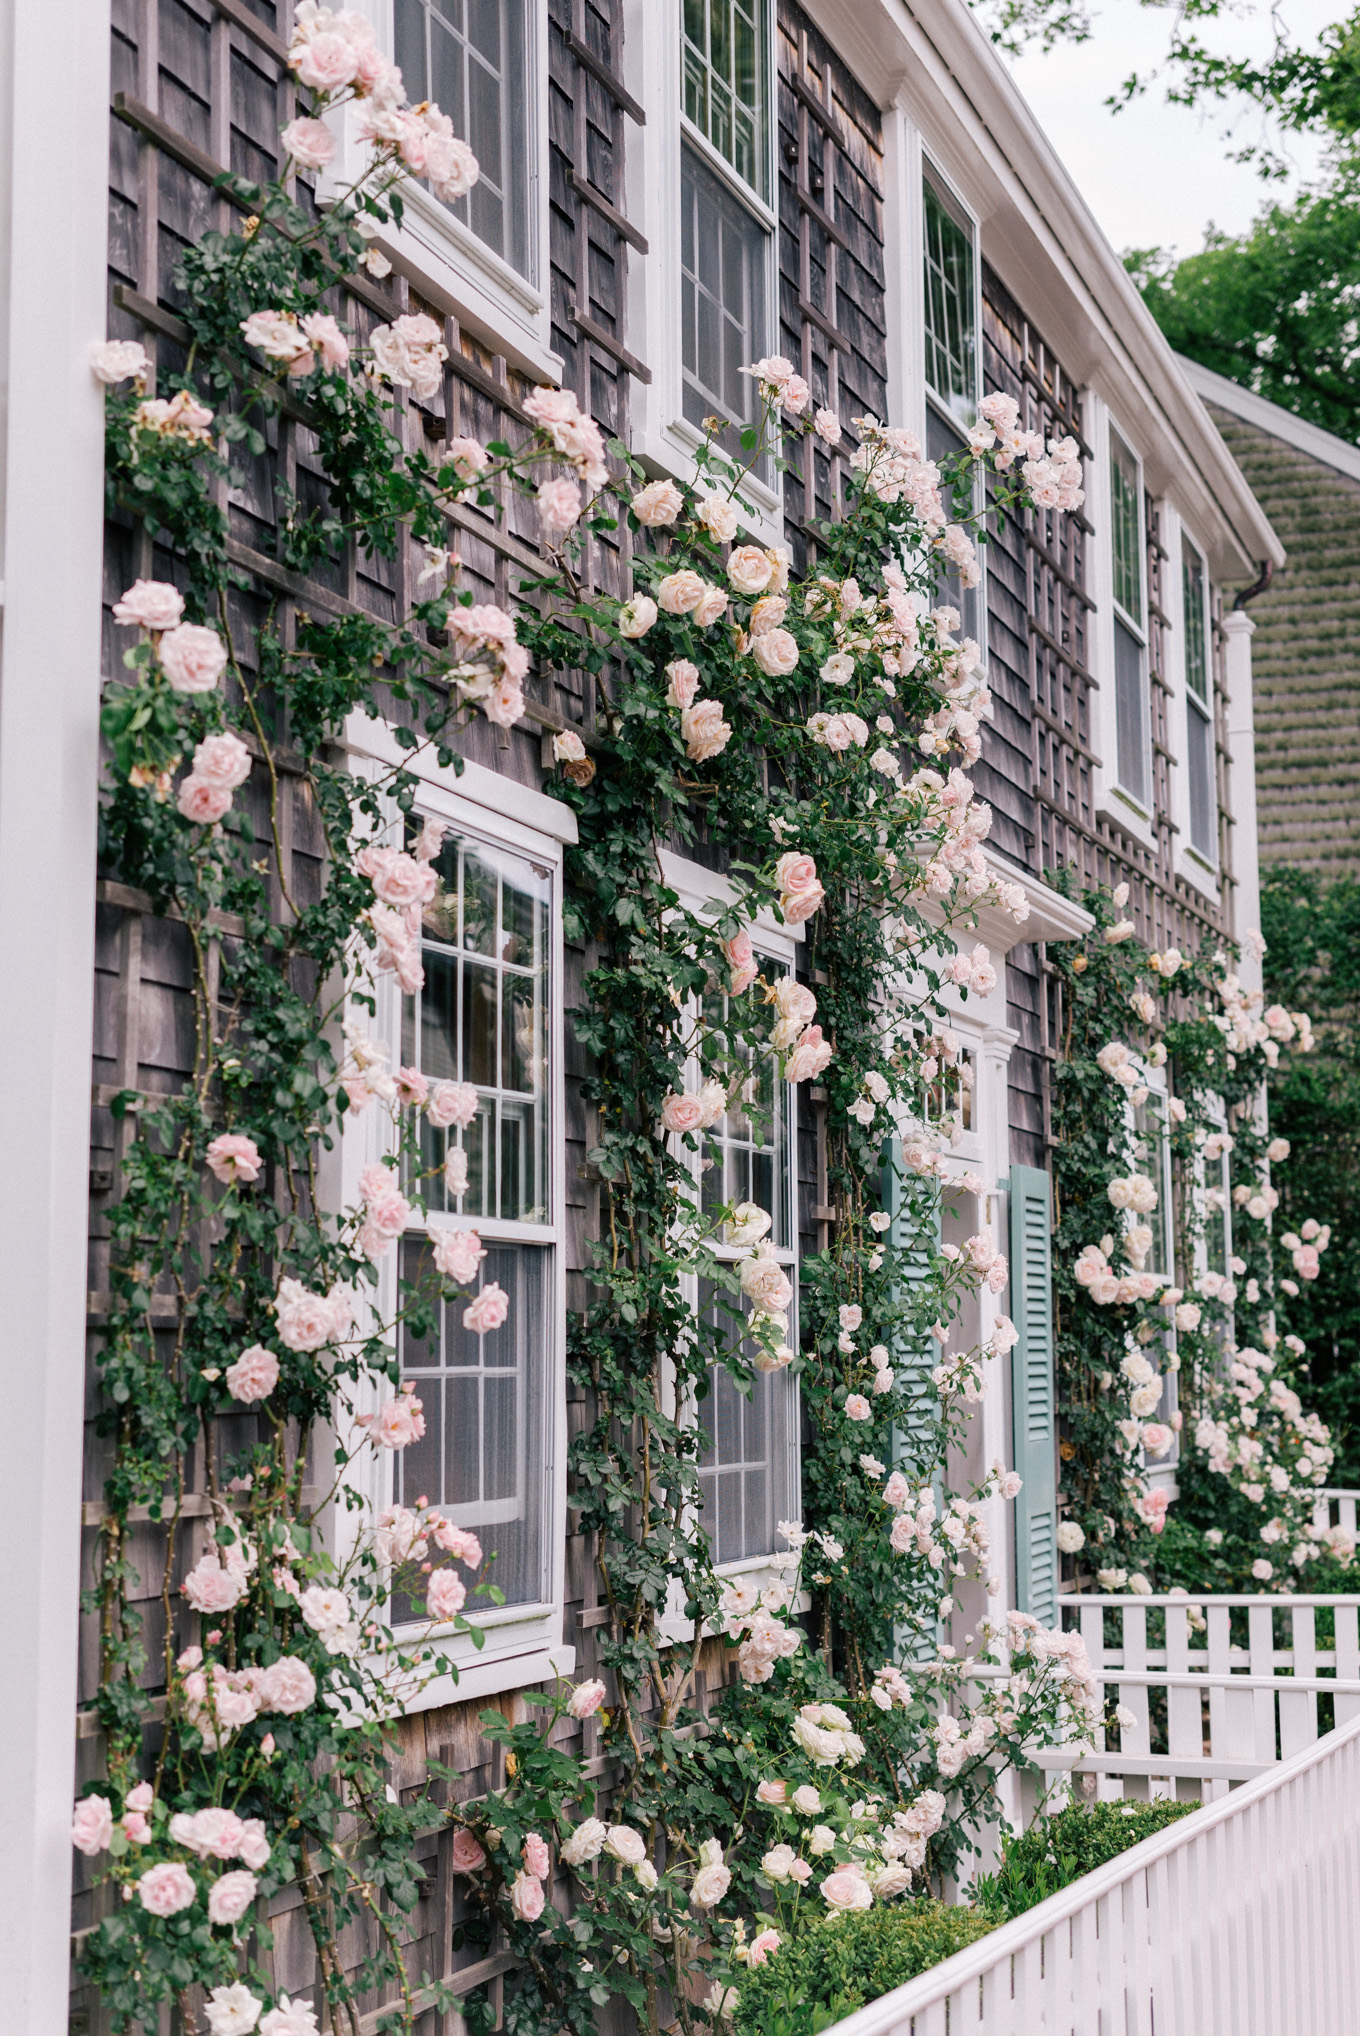 gmg-a-week-on-nantucket-part-two-1008460